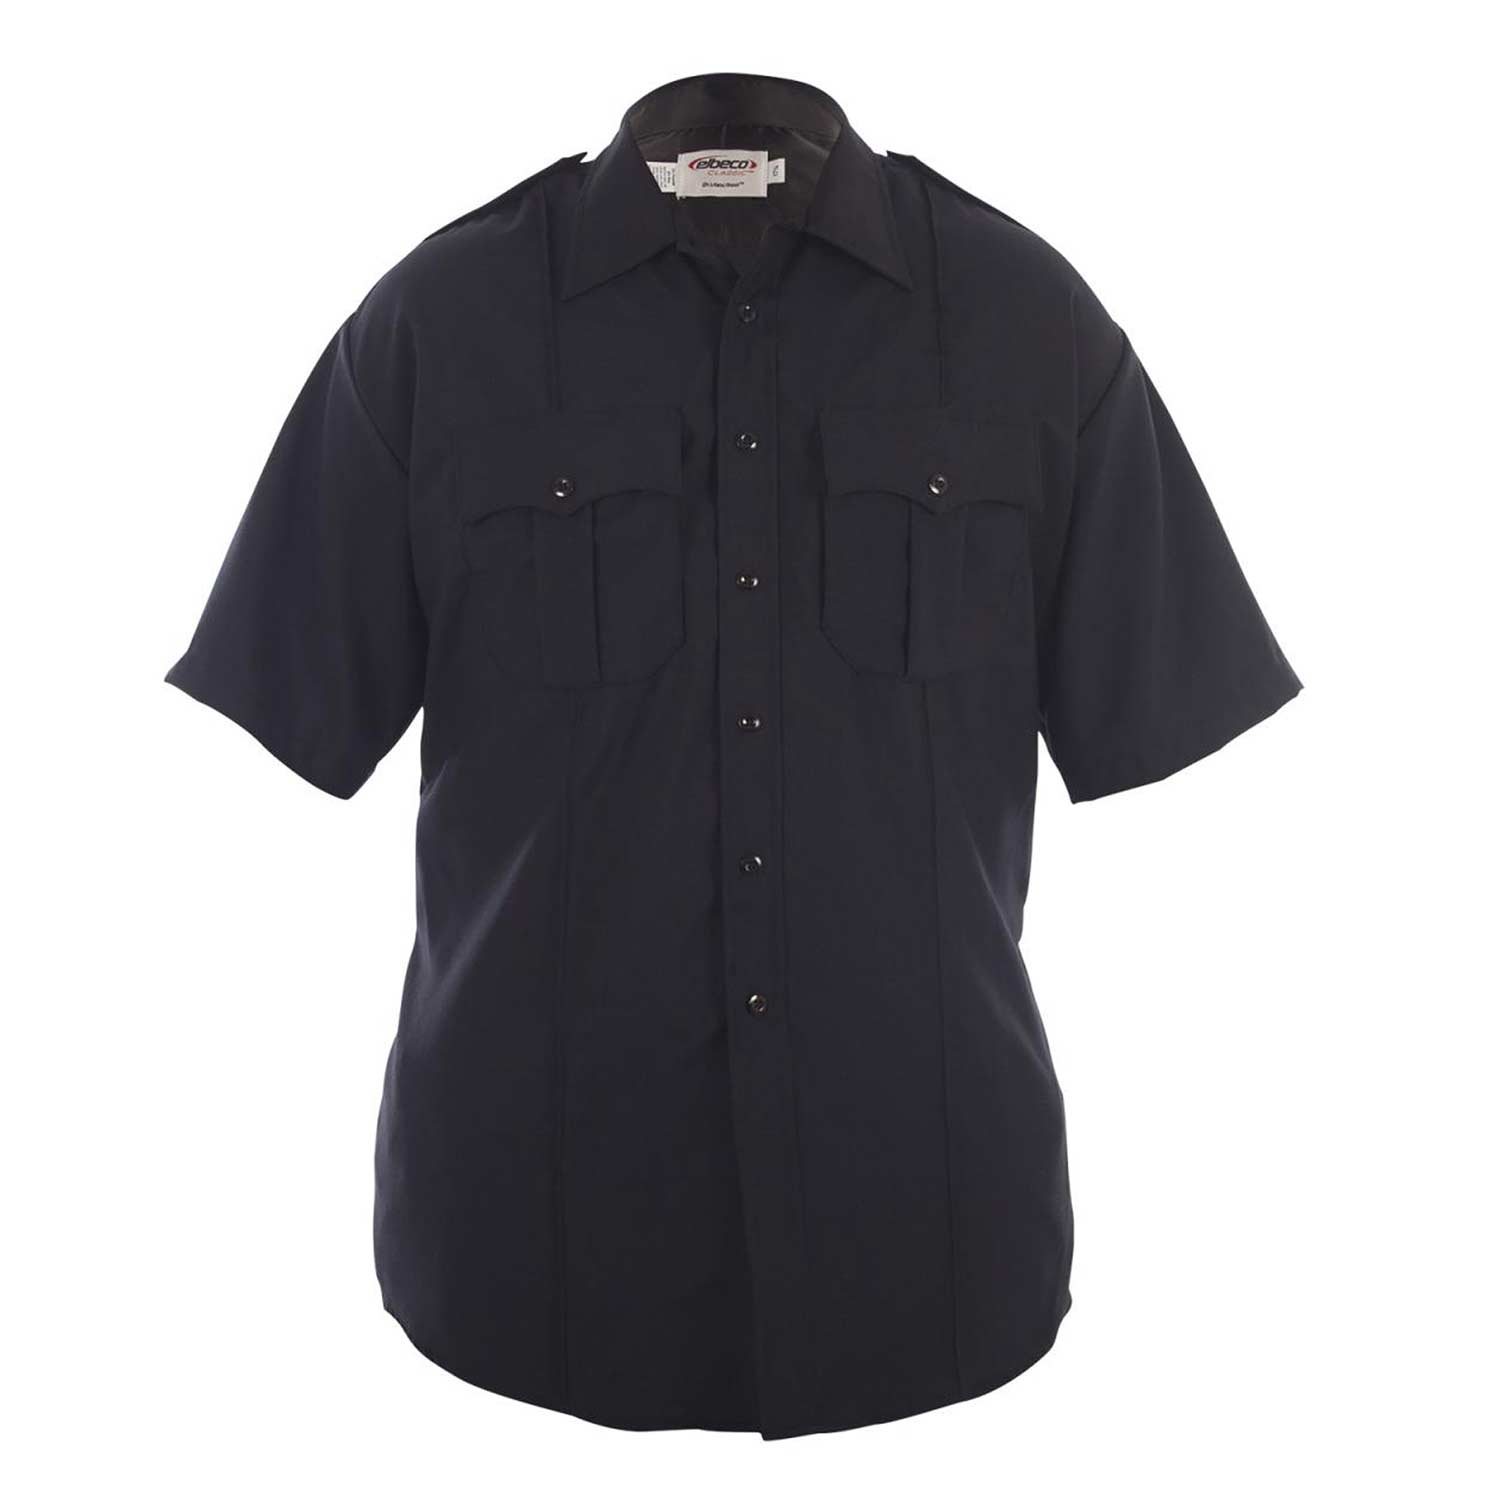 Elbeco Distinction Polyester/Wool Short Sleeve Shirt